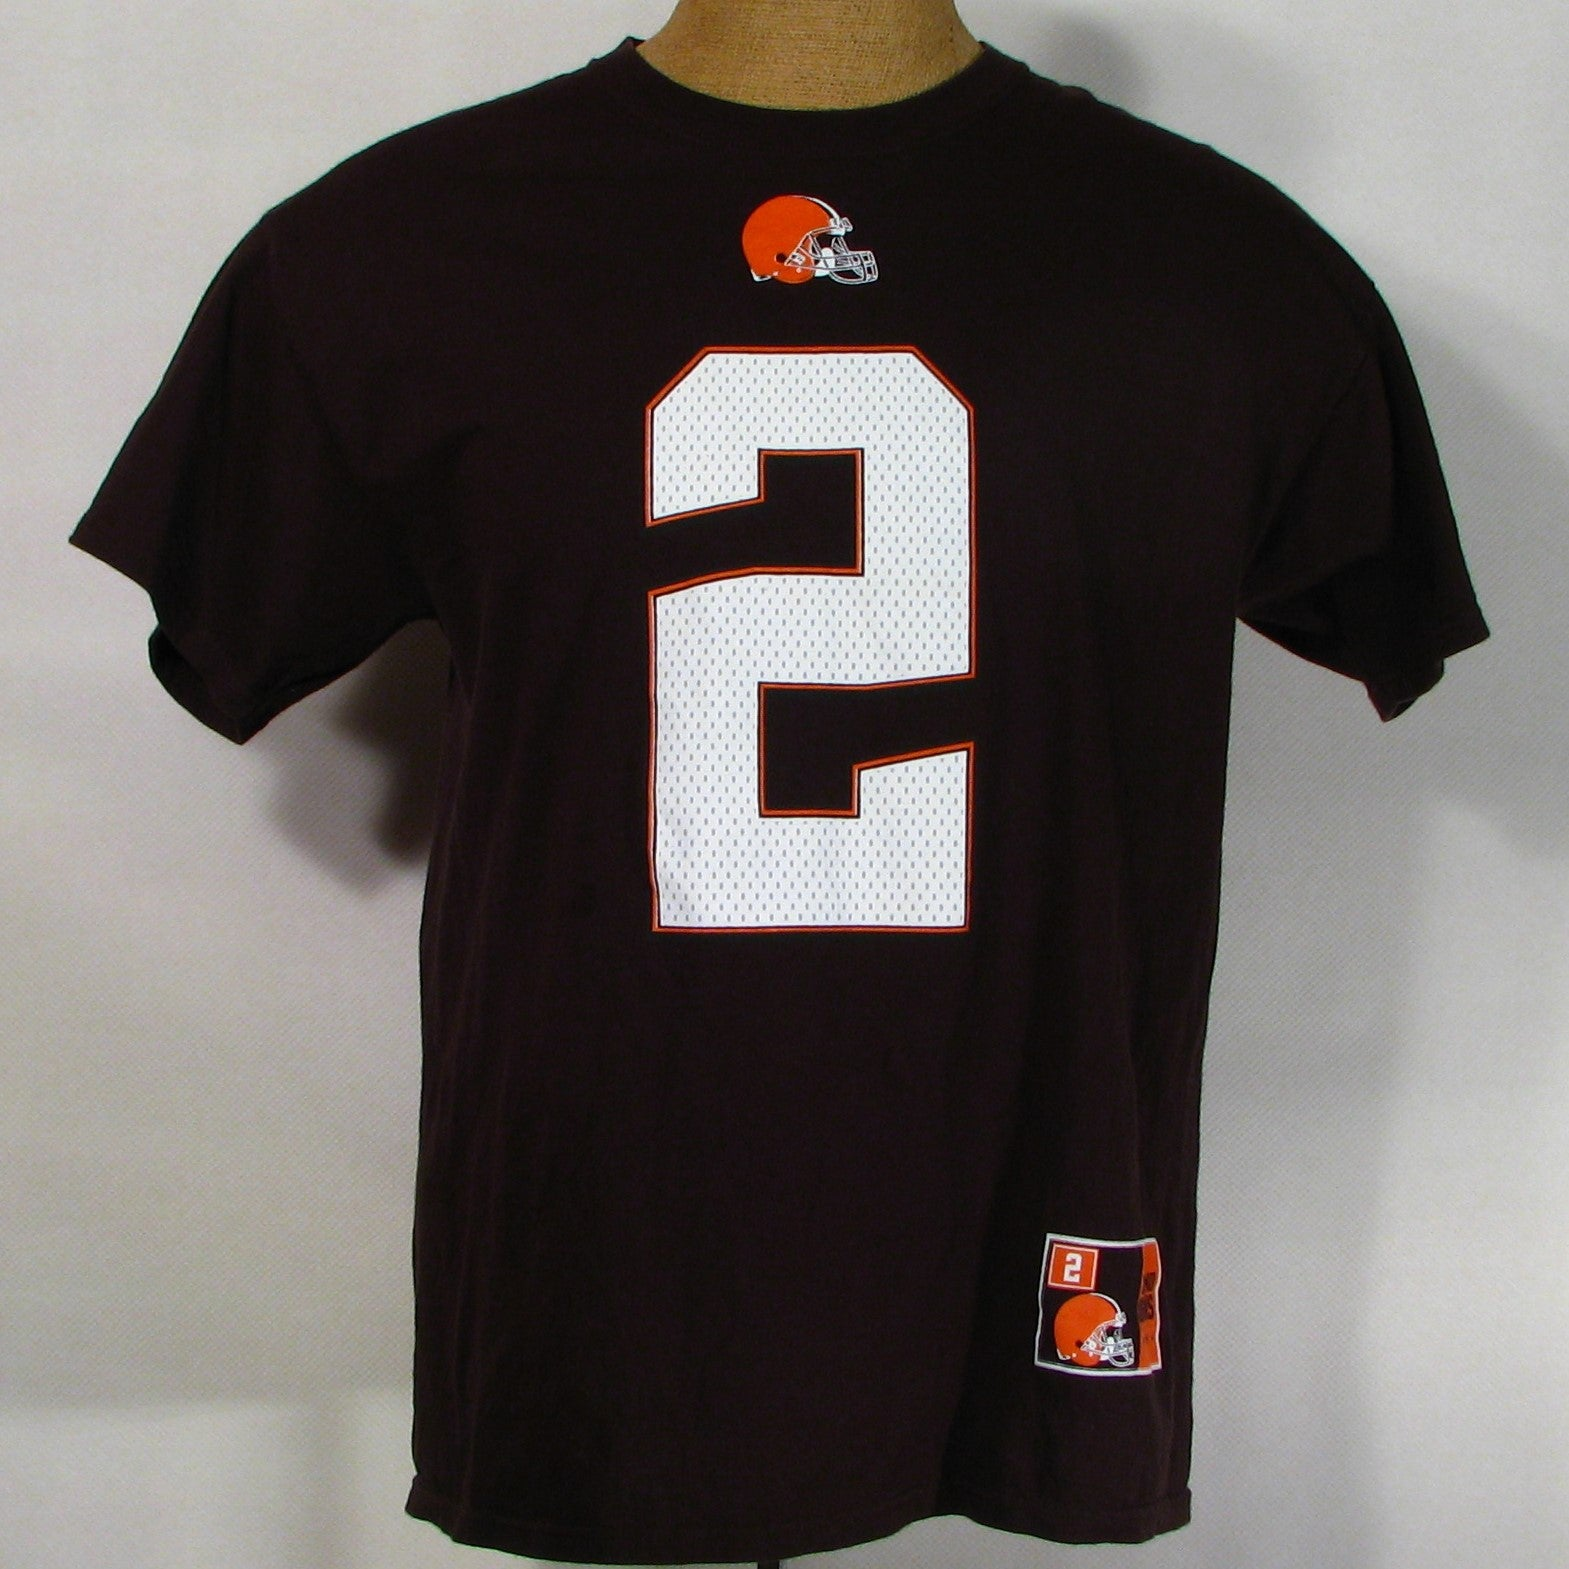 ... jersey cad26 9e91f netherlands cleveland browns manziel 2 t shirt a8a1c  cb627 greece item 2 new women nfl johnny ... e2c00ec44